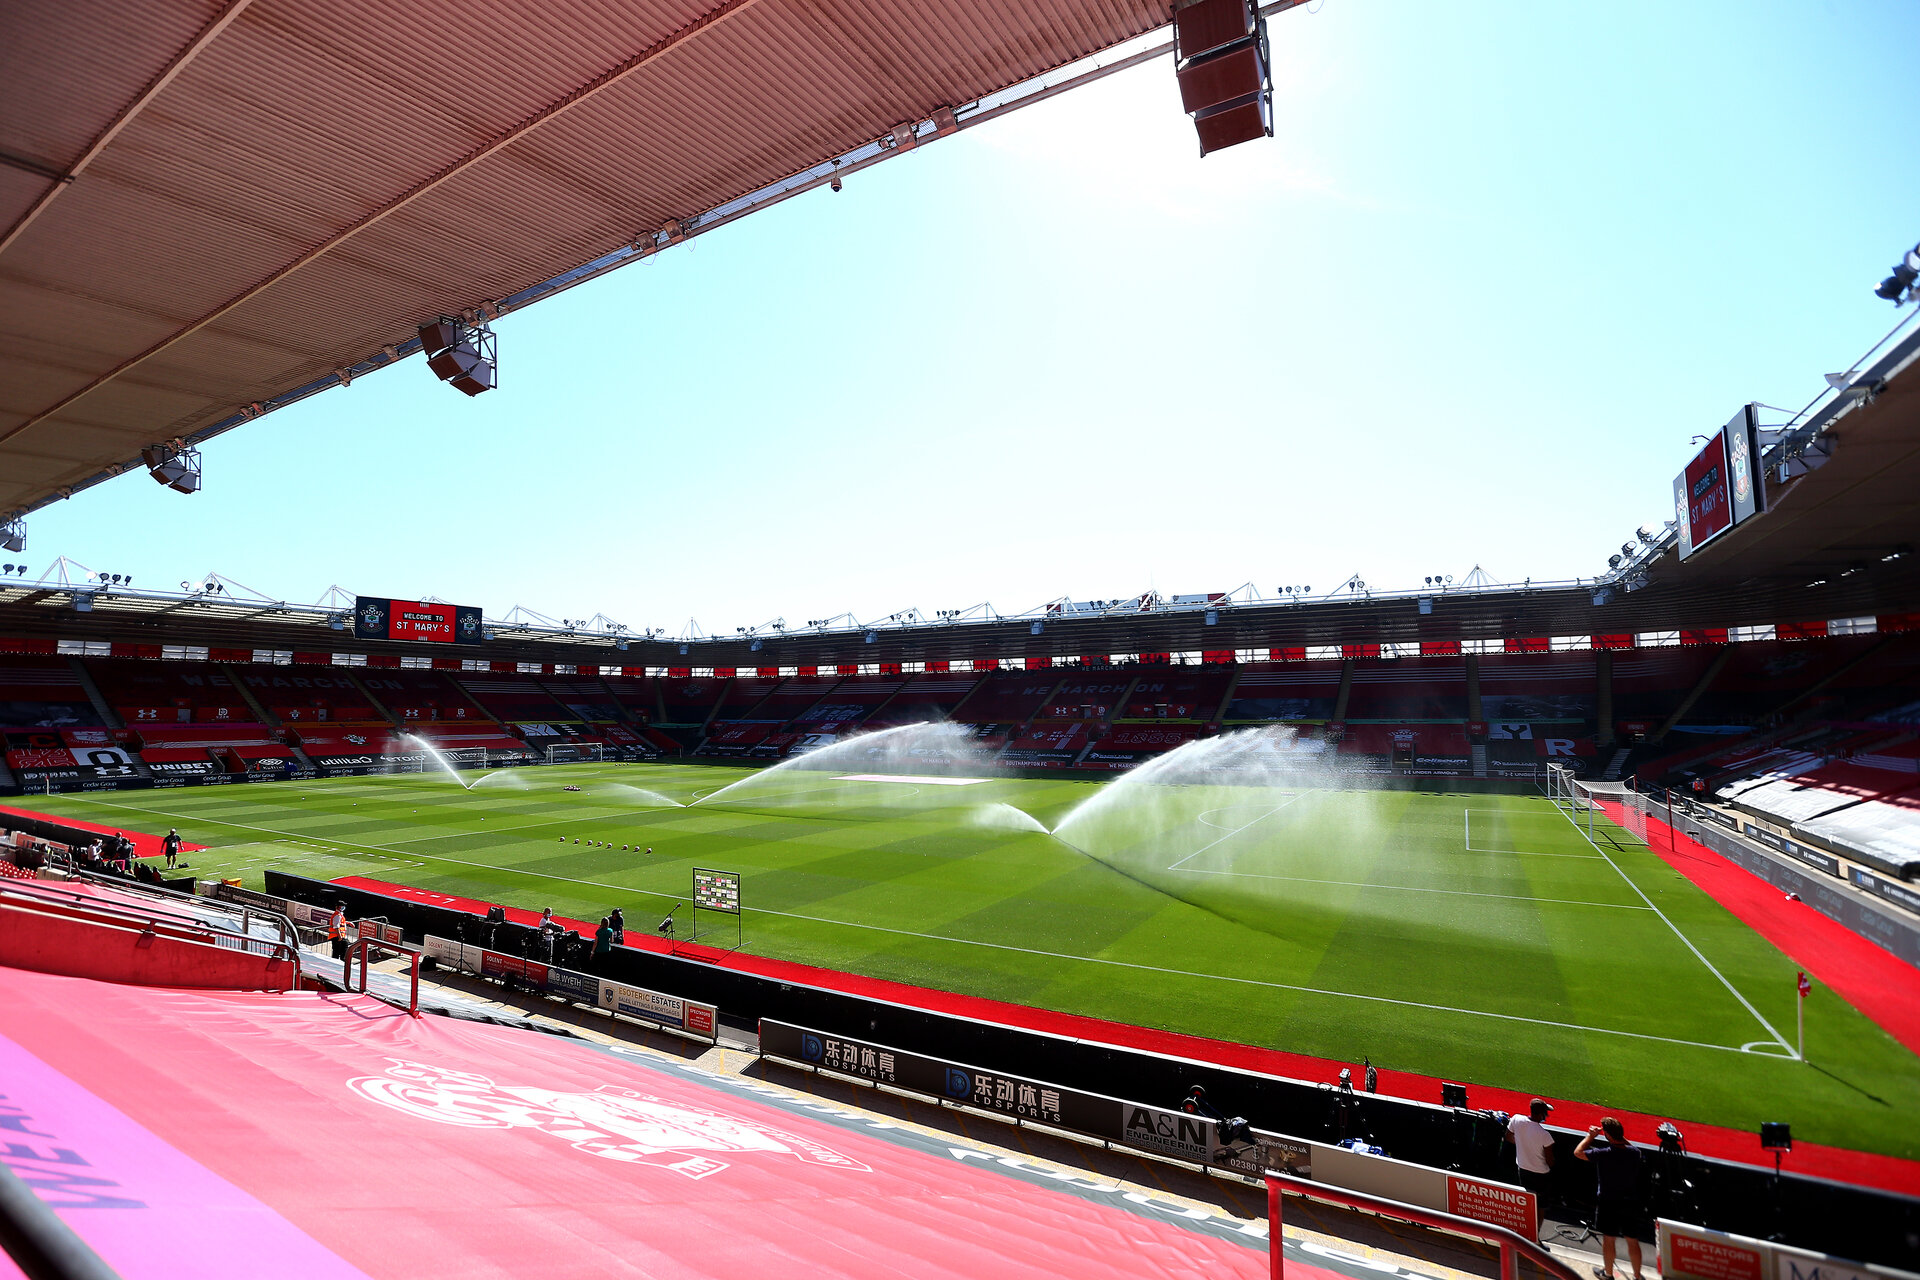 SOUTHAMPTON, ENGLAND - JUNE 25: A general view ahead of the Premier League match between Southampton FC and Arsenal FC at St Mary's Stadium on June 25, 2020 in Southampton, United Kingdom. (Photo by Matt Watson/Southampton FC via Getty Images)